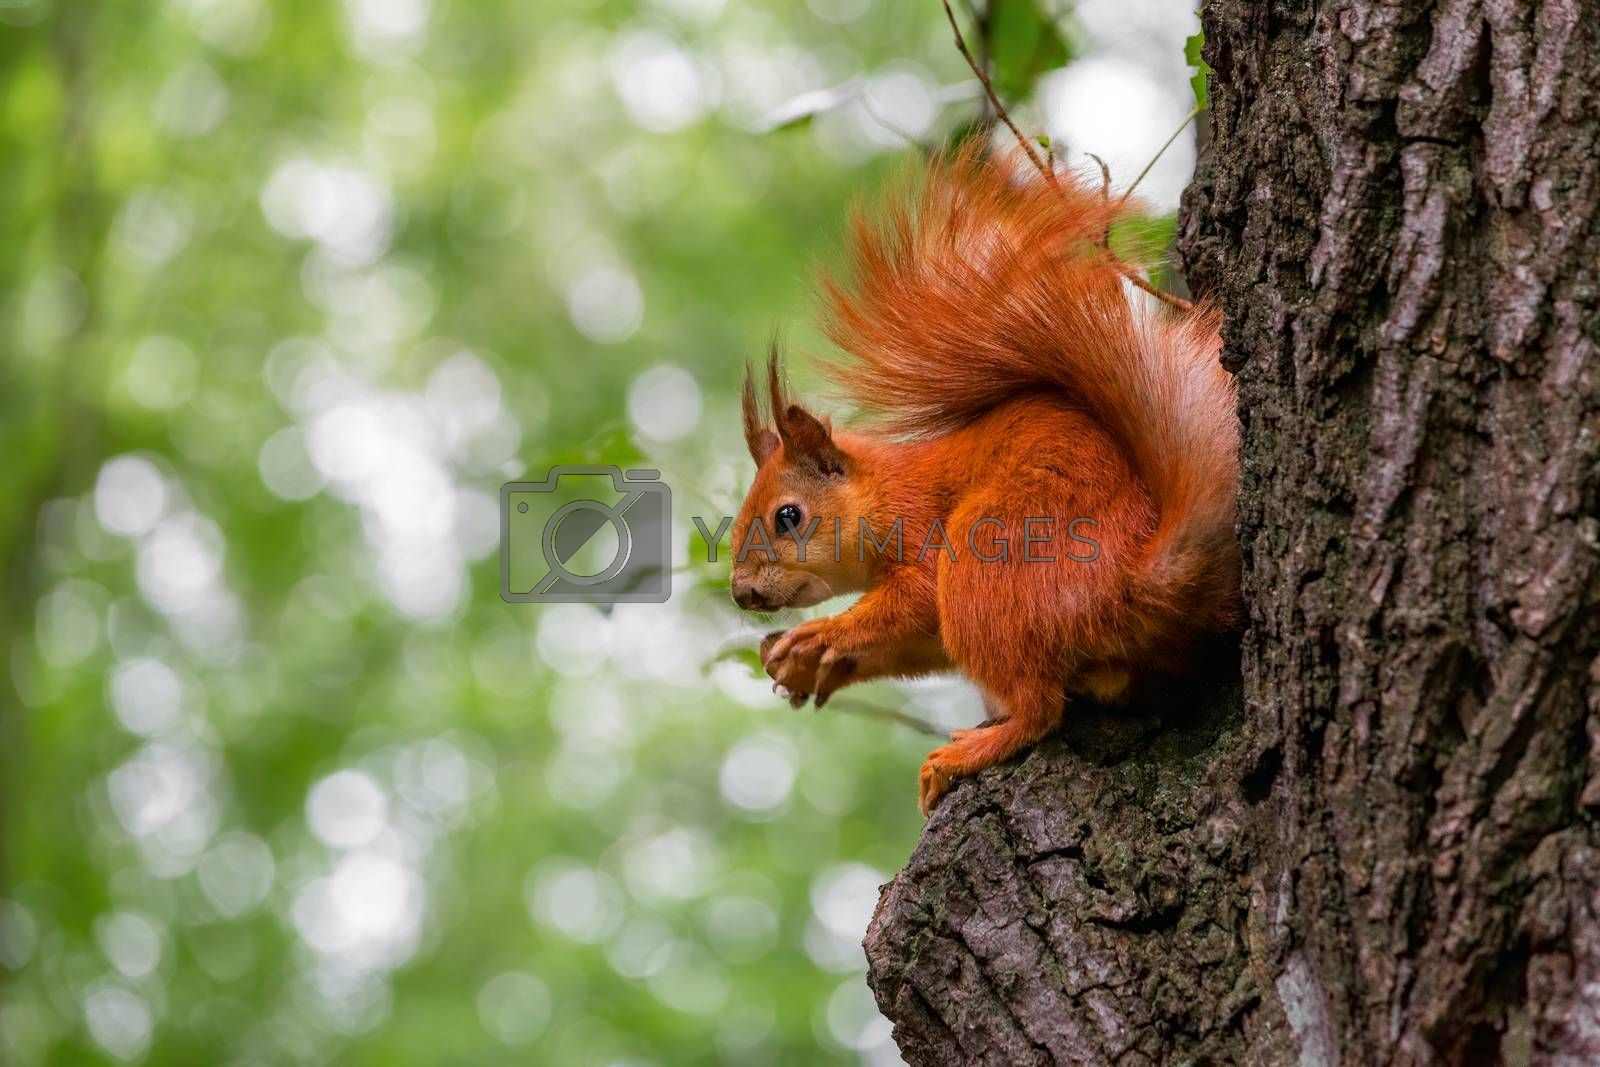 Cute red wild squirrel eating a walnut in the park. Close-up view